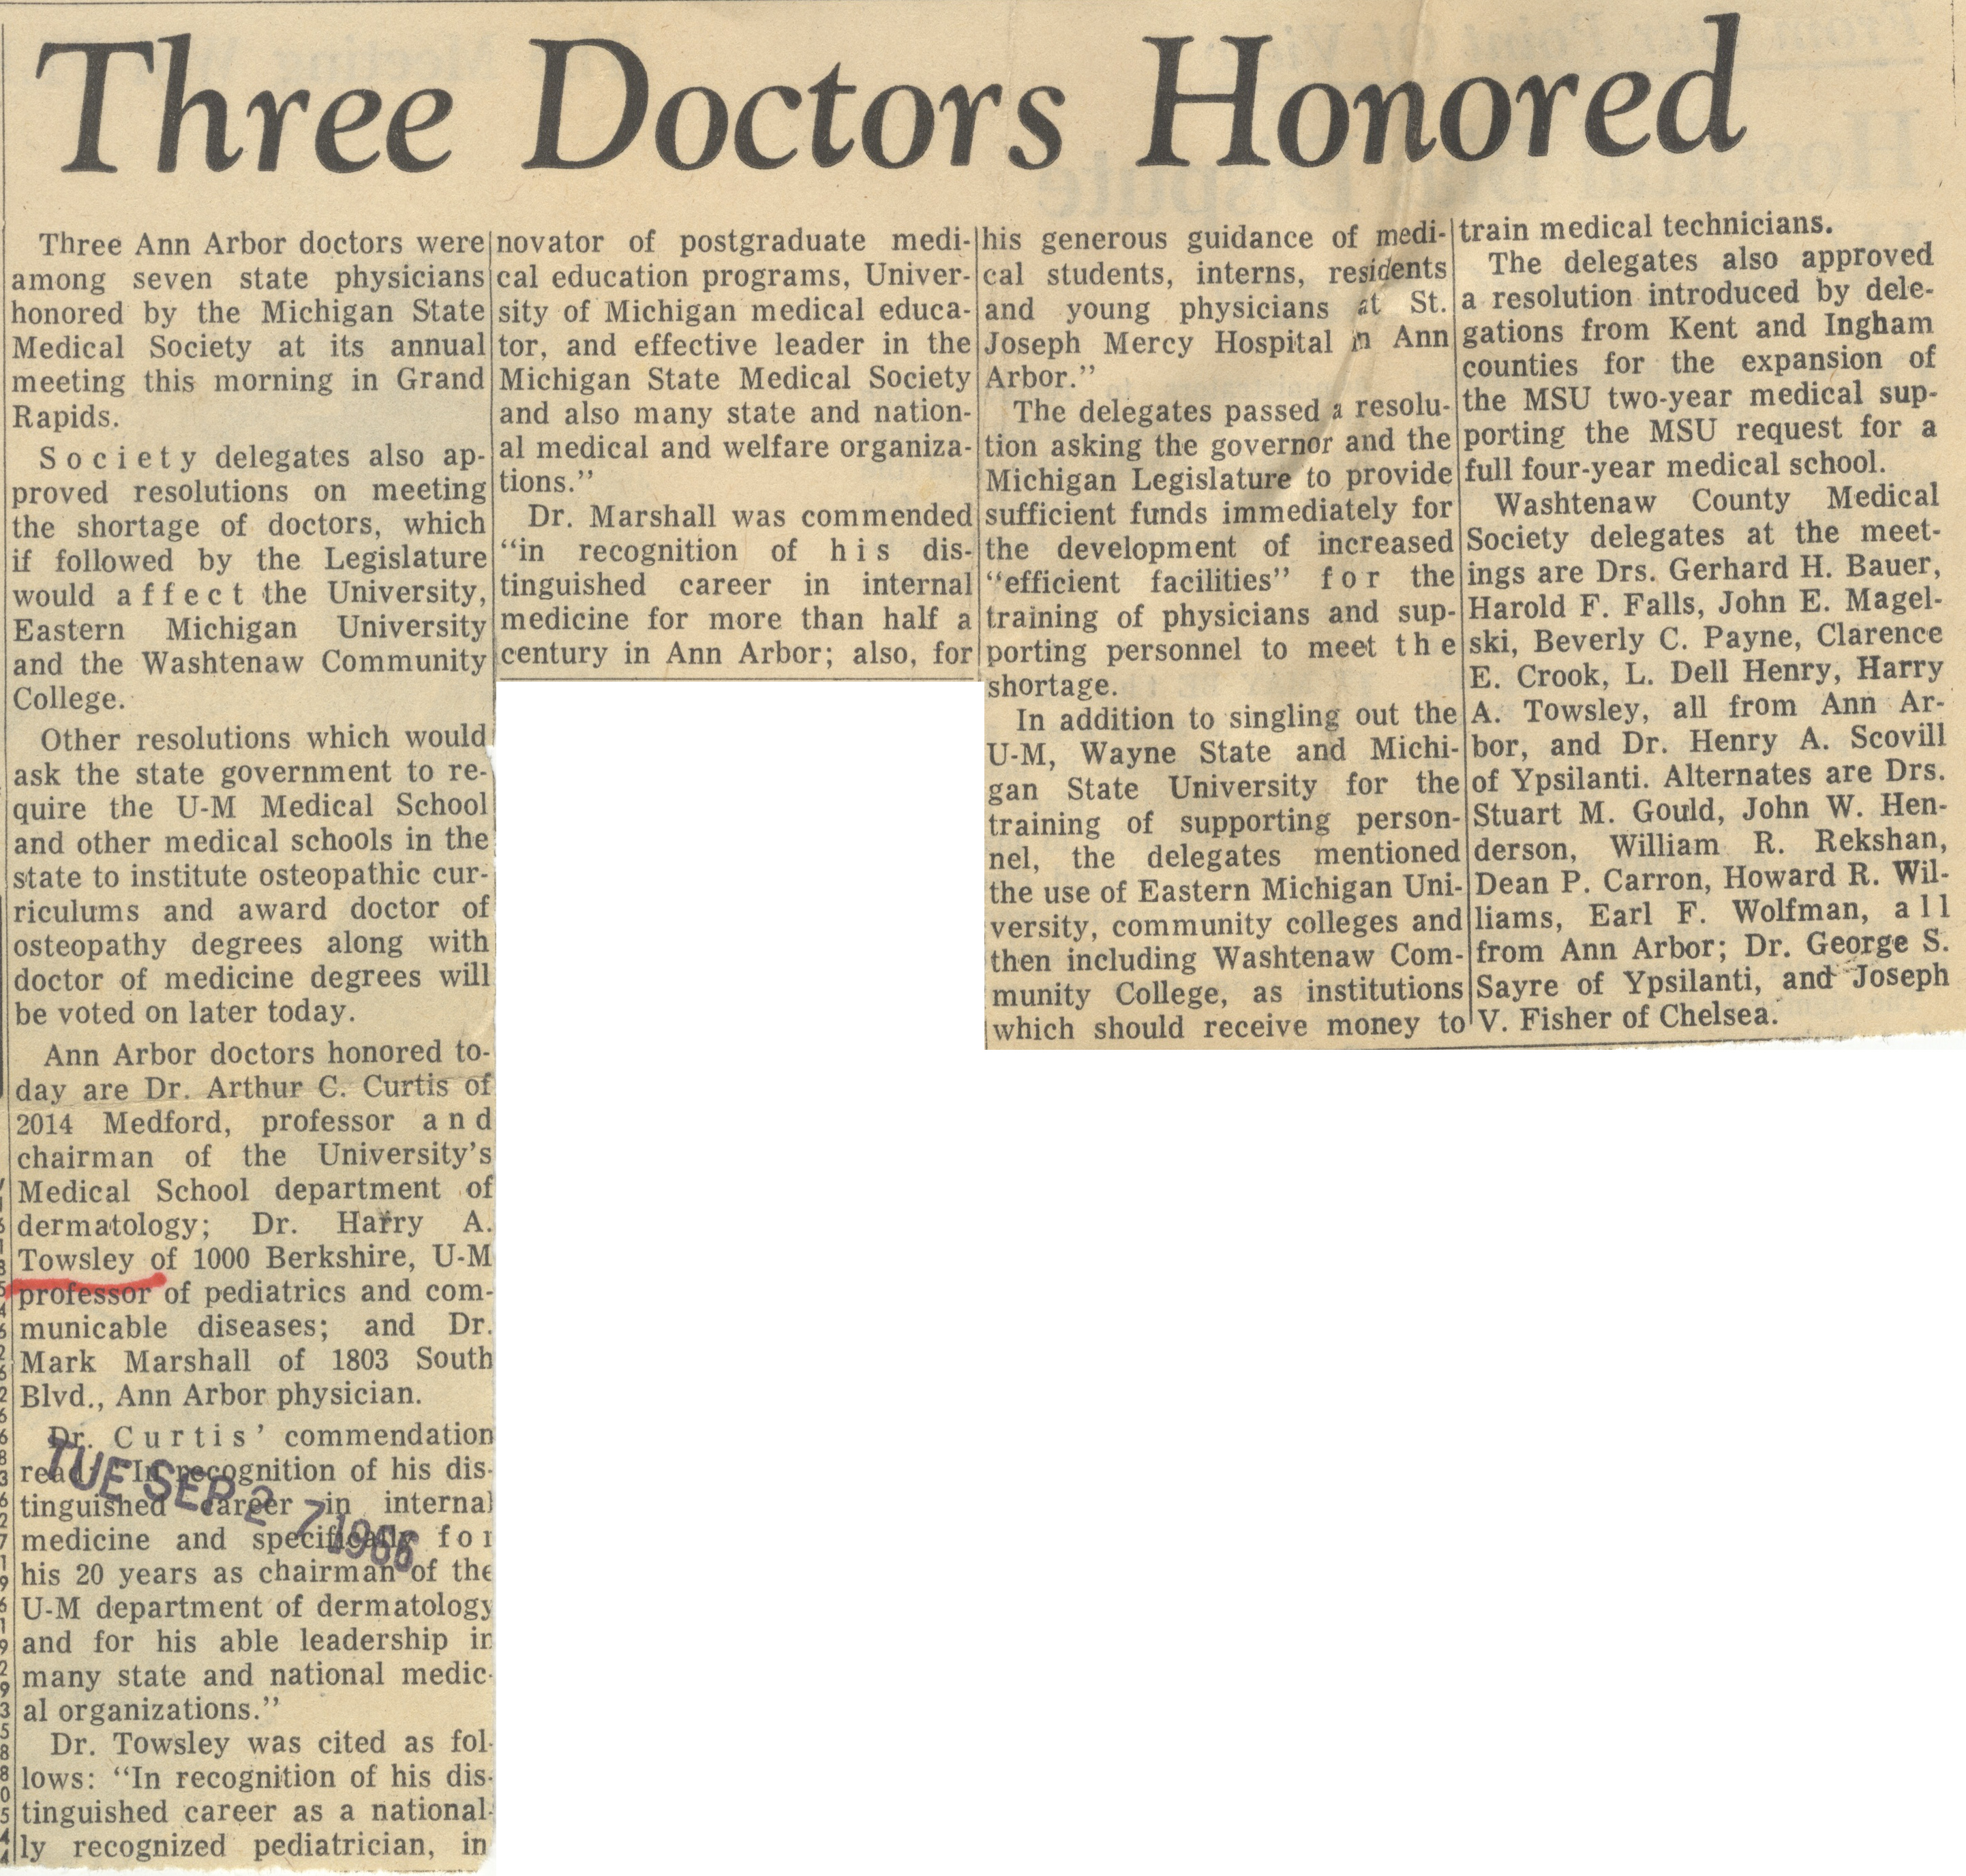 Three Doctors Honored  image